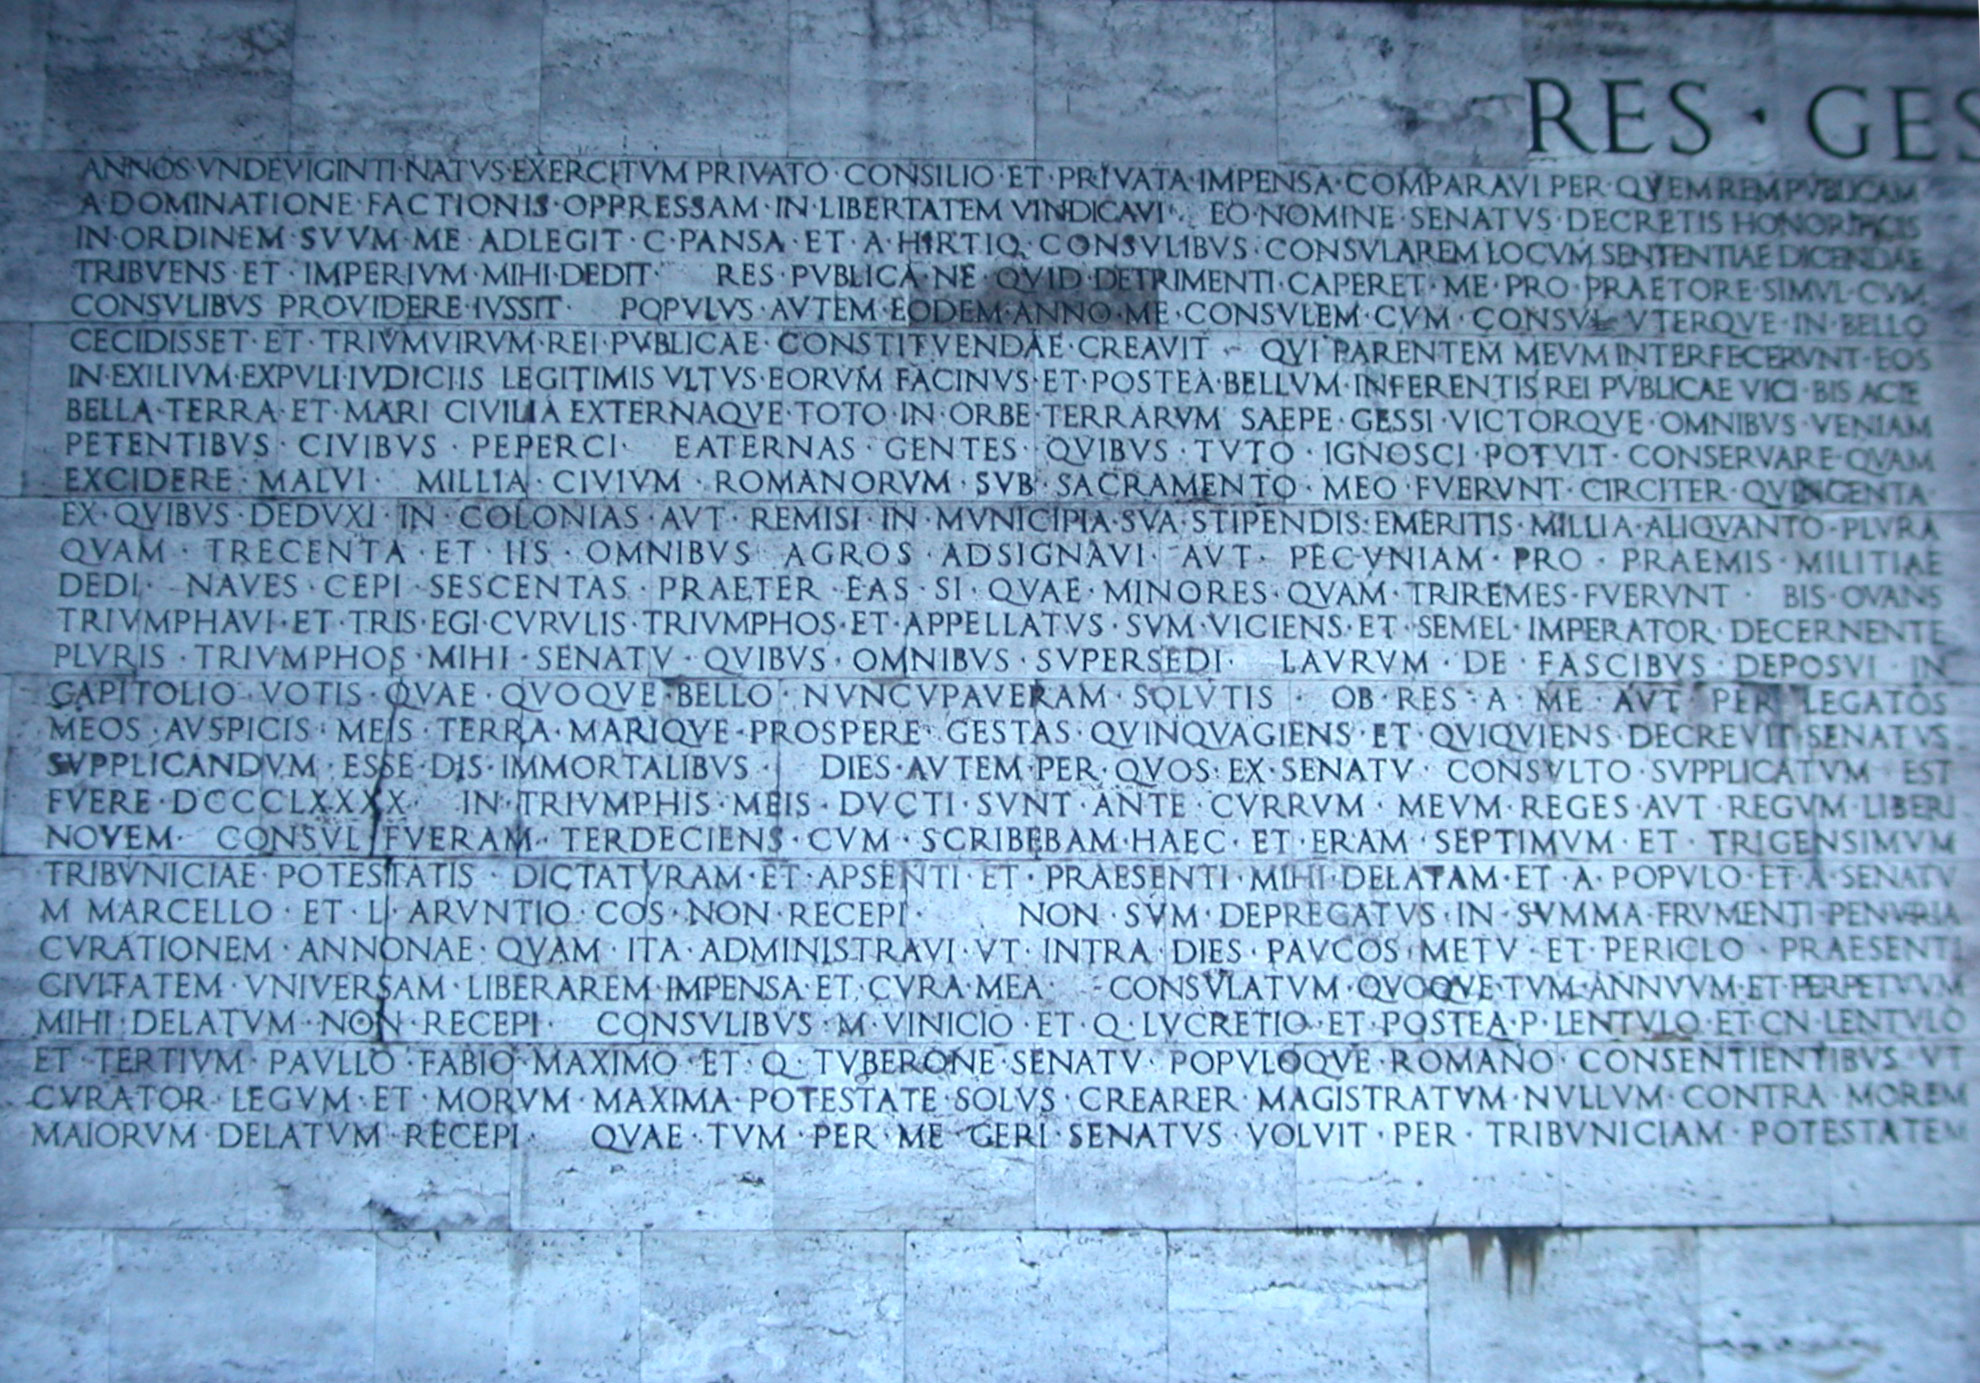 an analysis of augustus regime in res gestae Res gestae divi augusti is the funerary inscription of the first roman emperor,  augustus, giving  later historians (both ancient and modern) who characterized  augustus' rule according to categories he himself constructed in the res gestae .